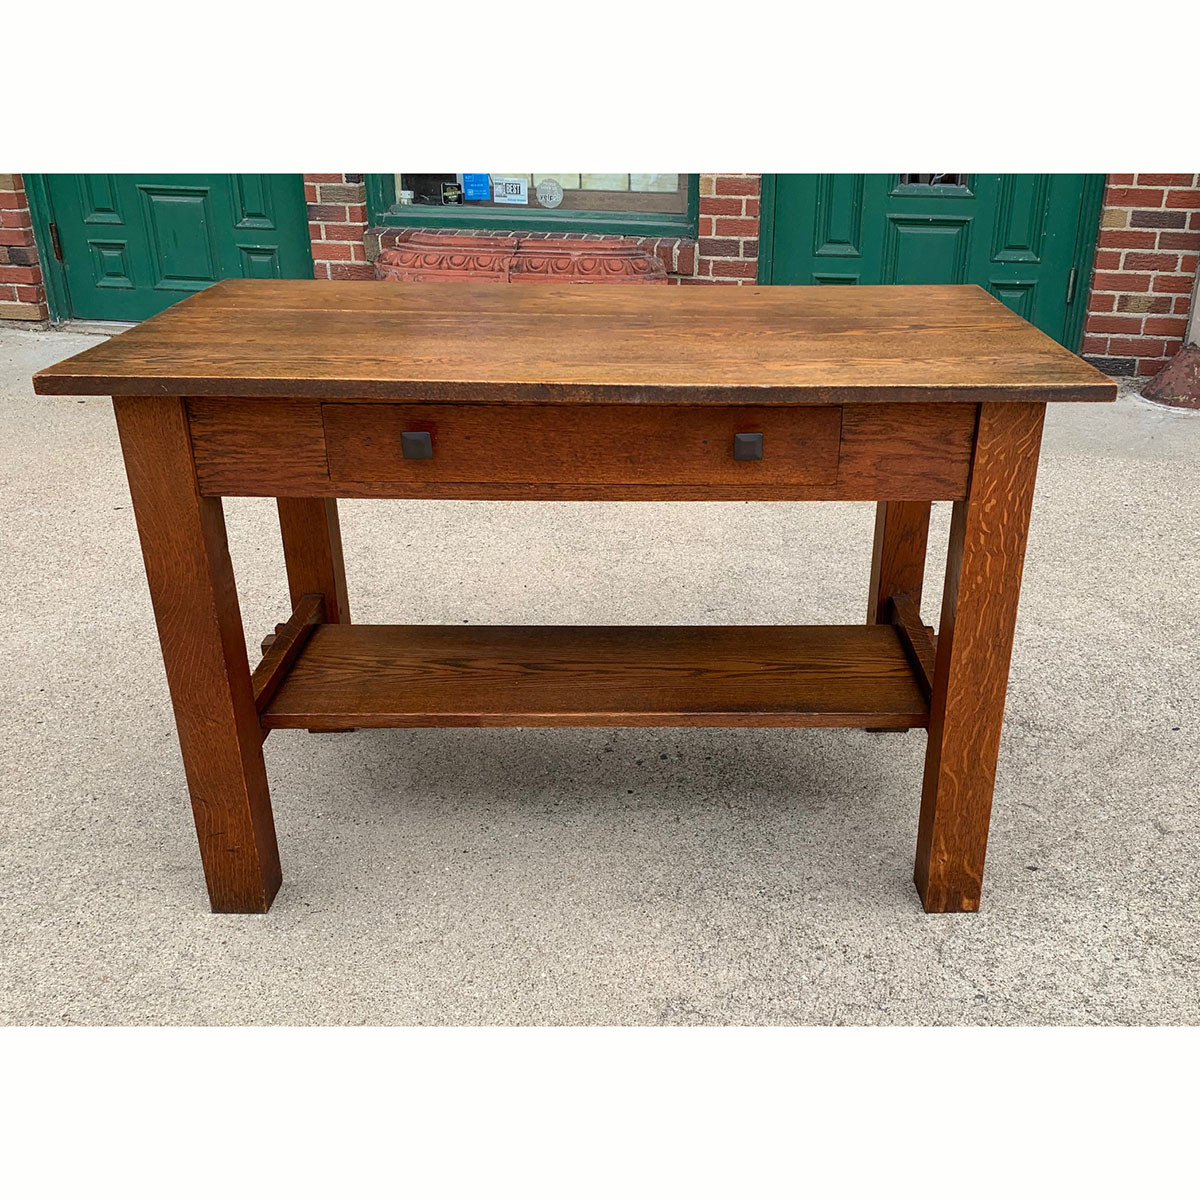 F21122 - Antique Arts & Crafts Library Table